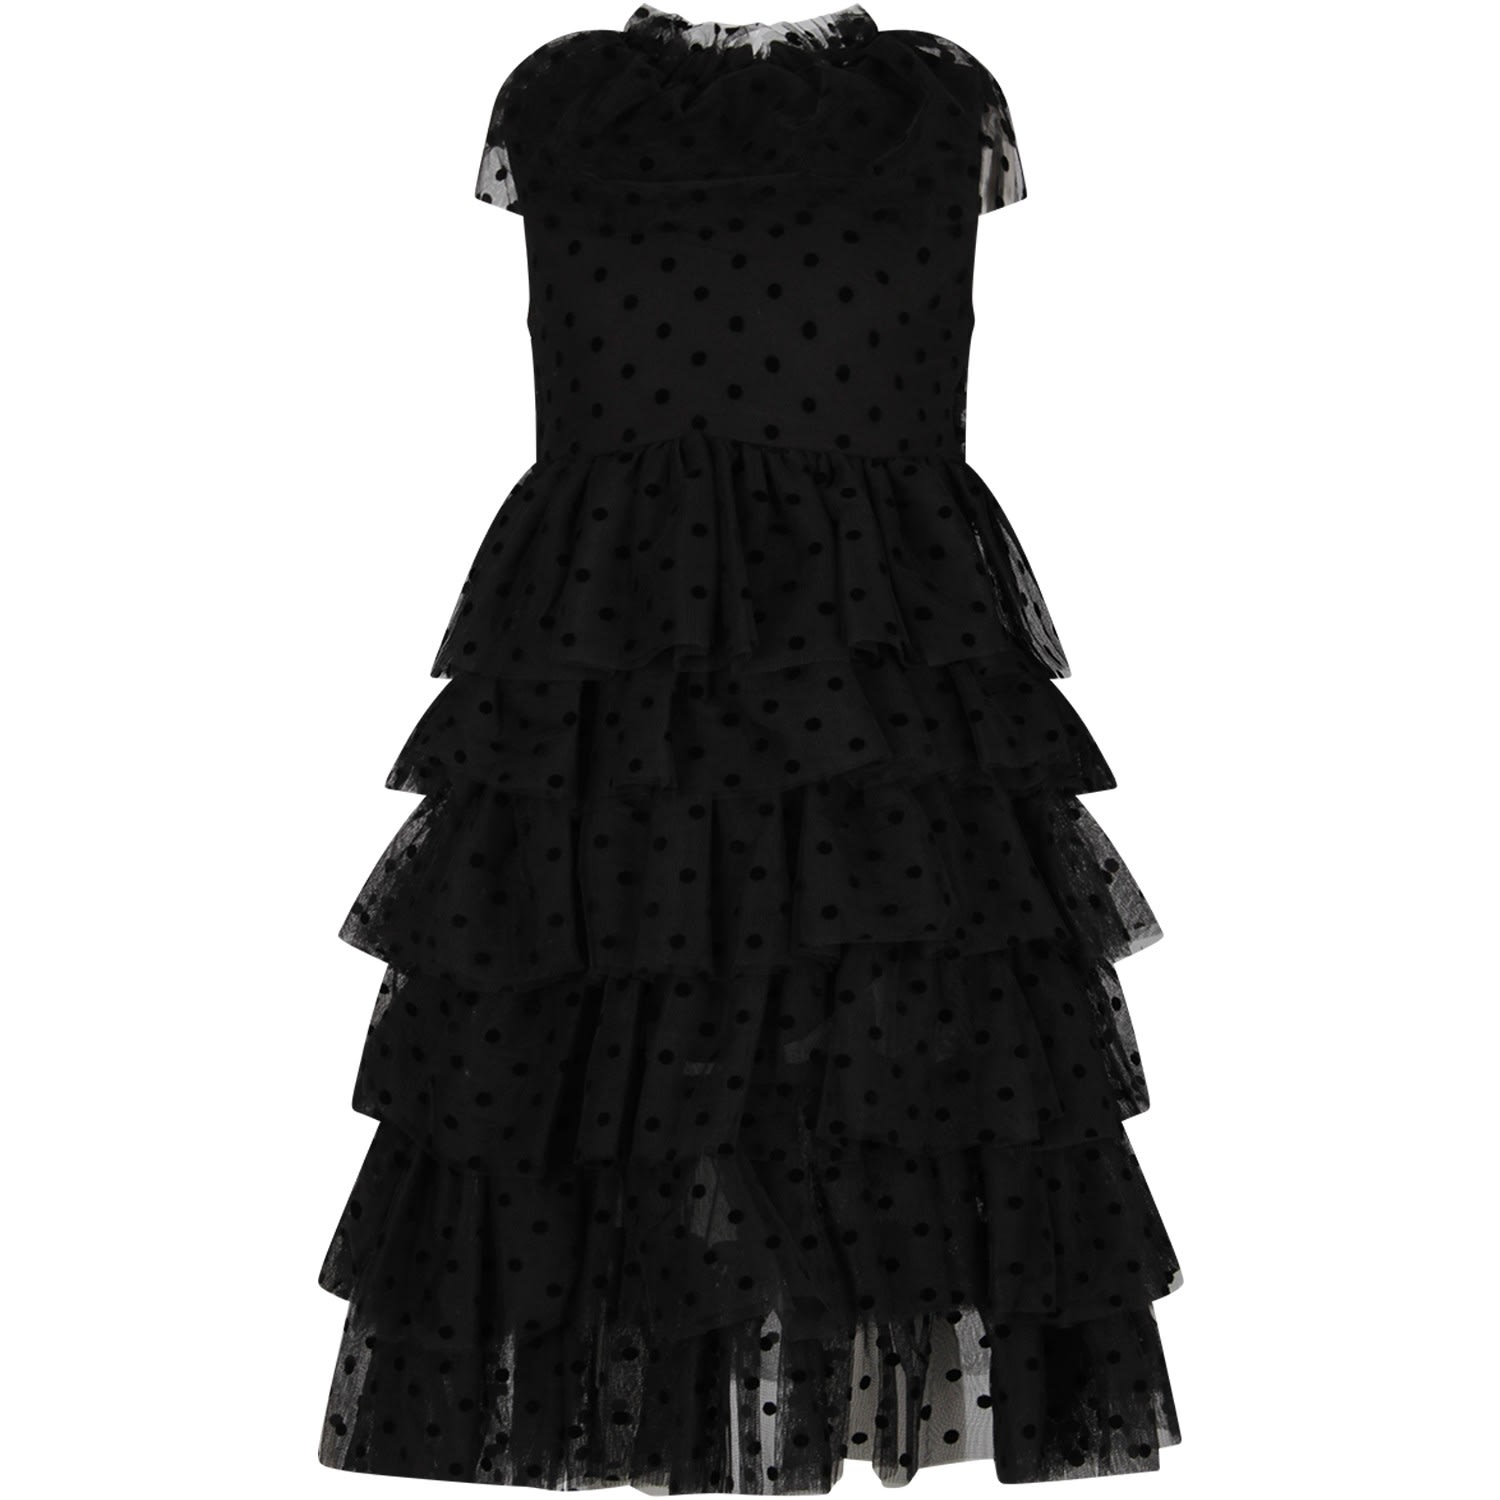 Buy Sonia Rykiel Black Girl Dress With Polka-dots online, shop Sonia Rykiel with free shipping